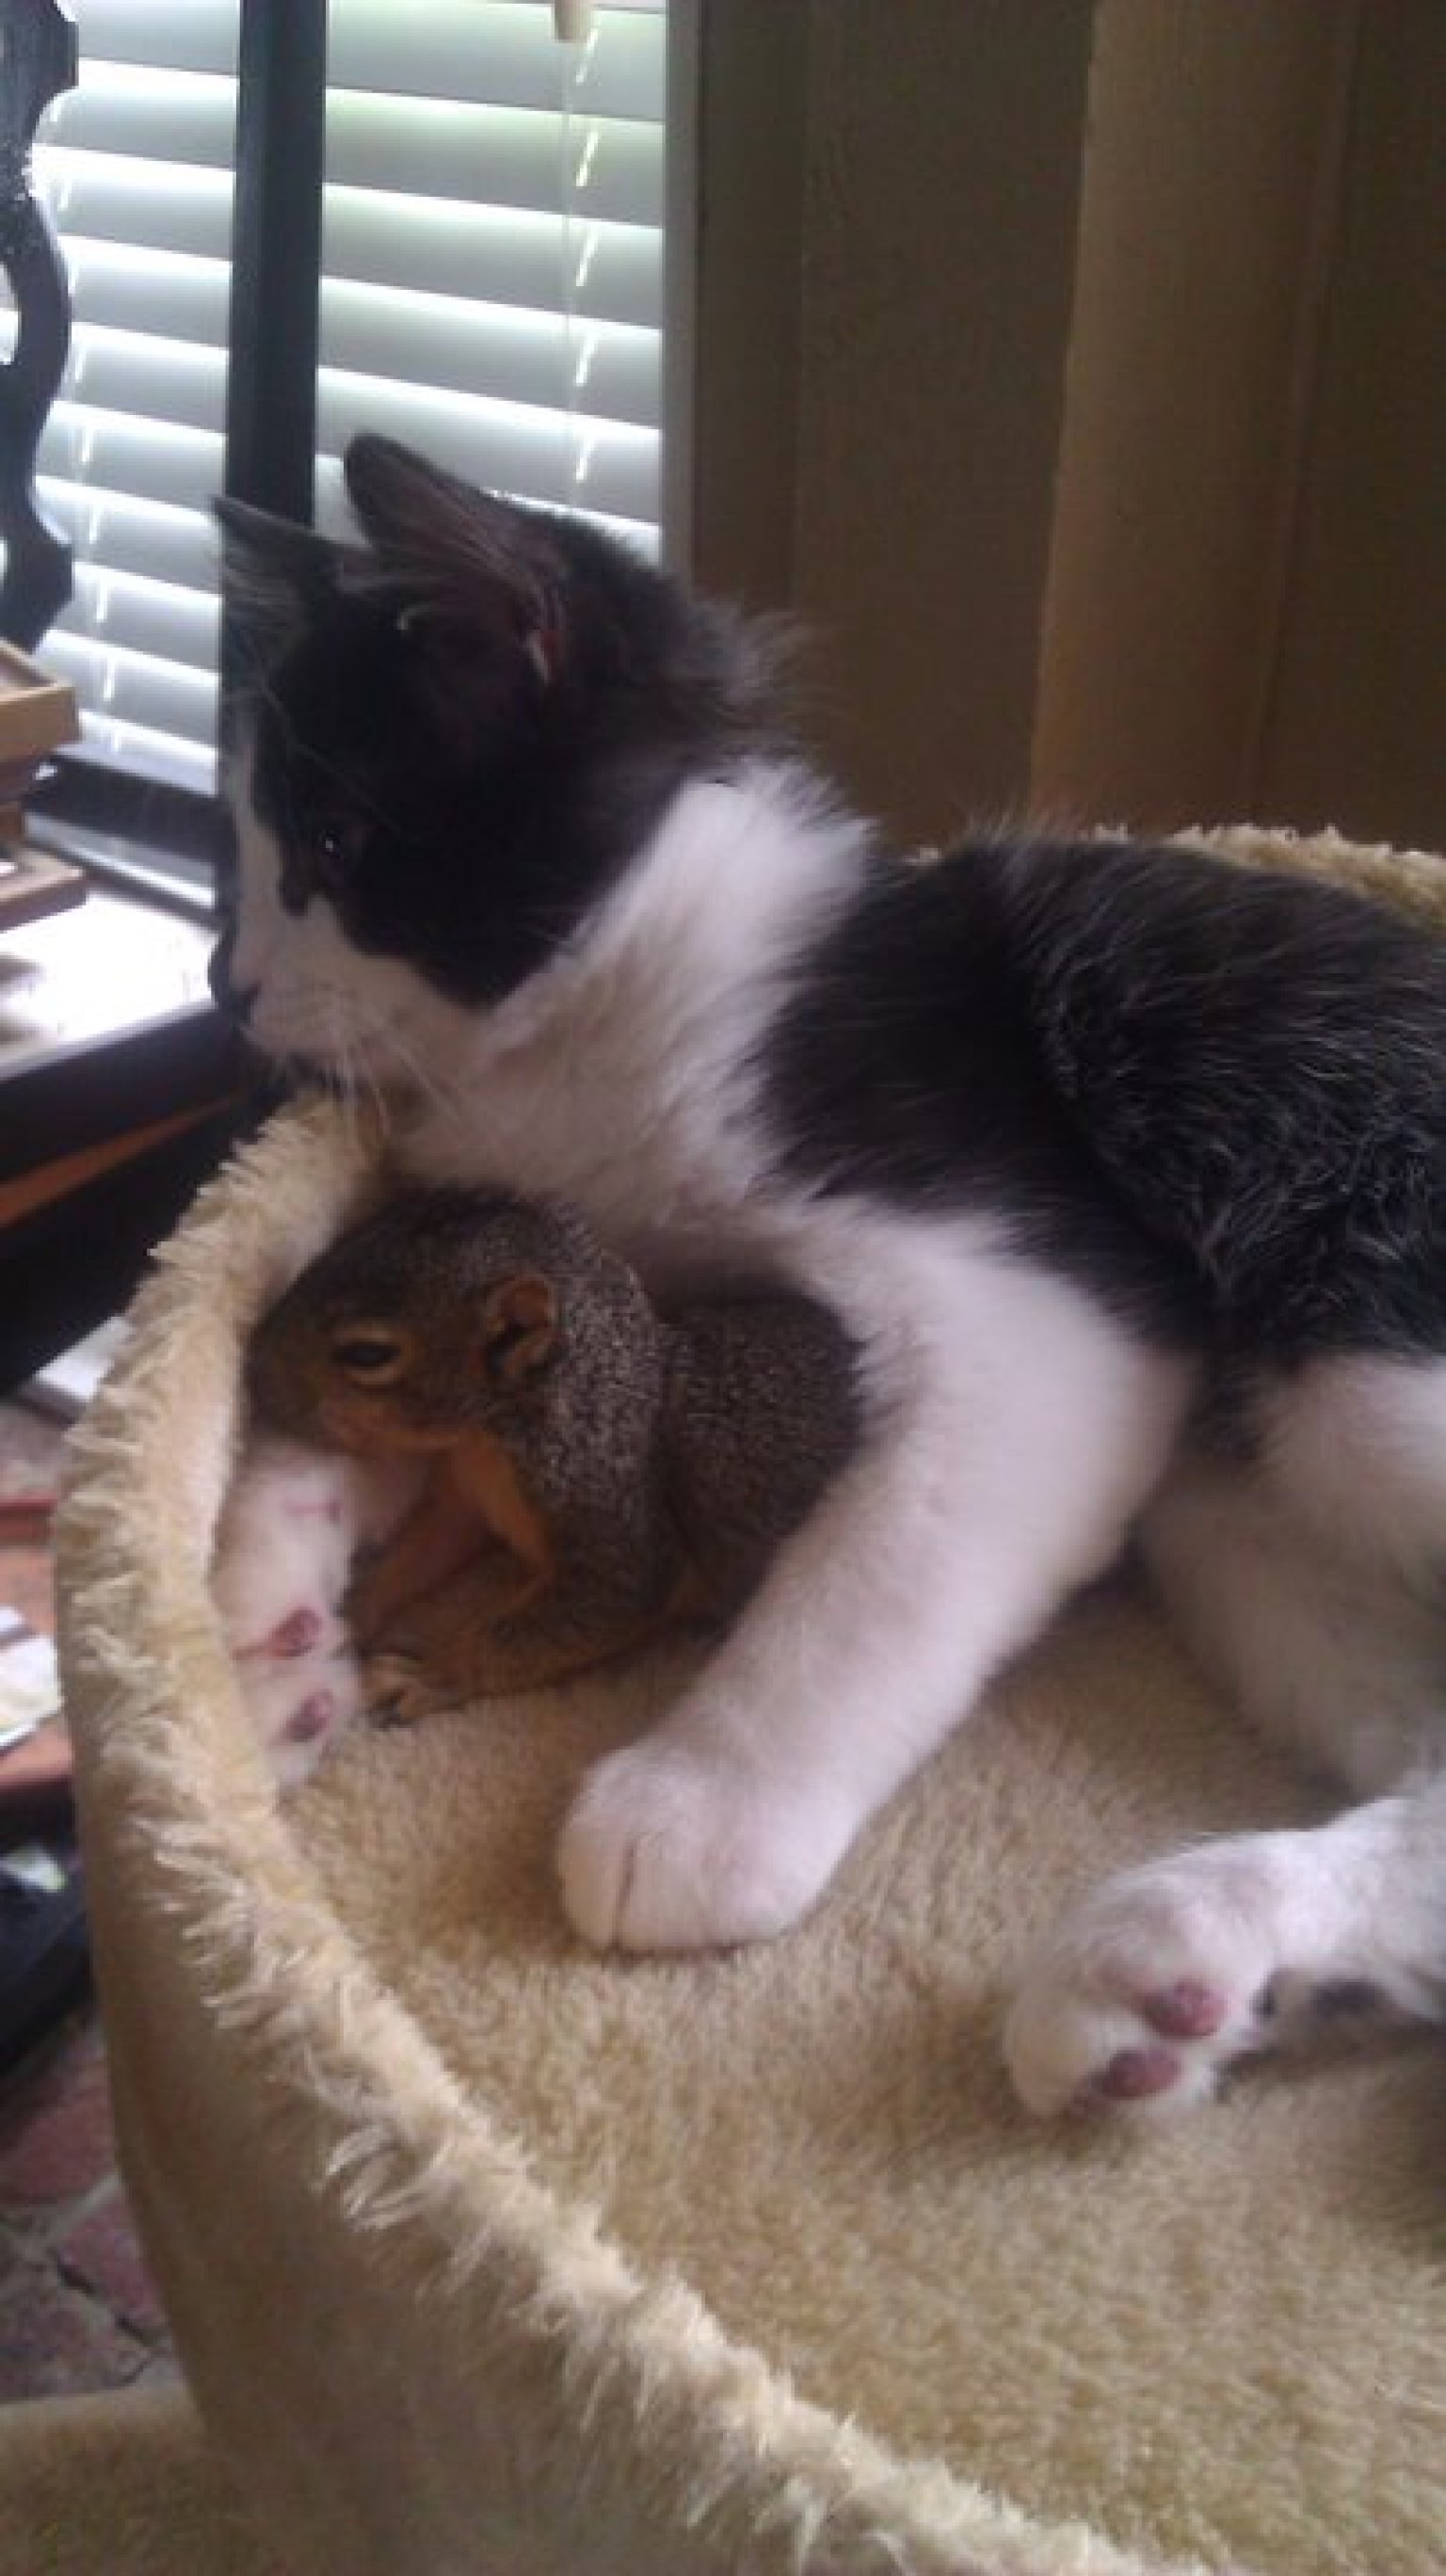 squirrel and cat form unlikely friendship  photo